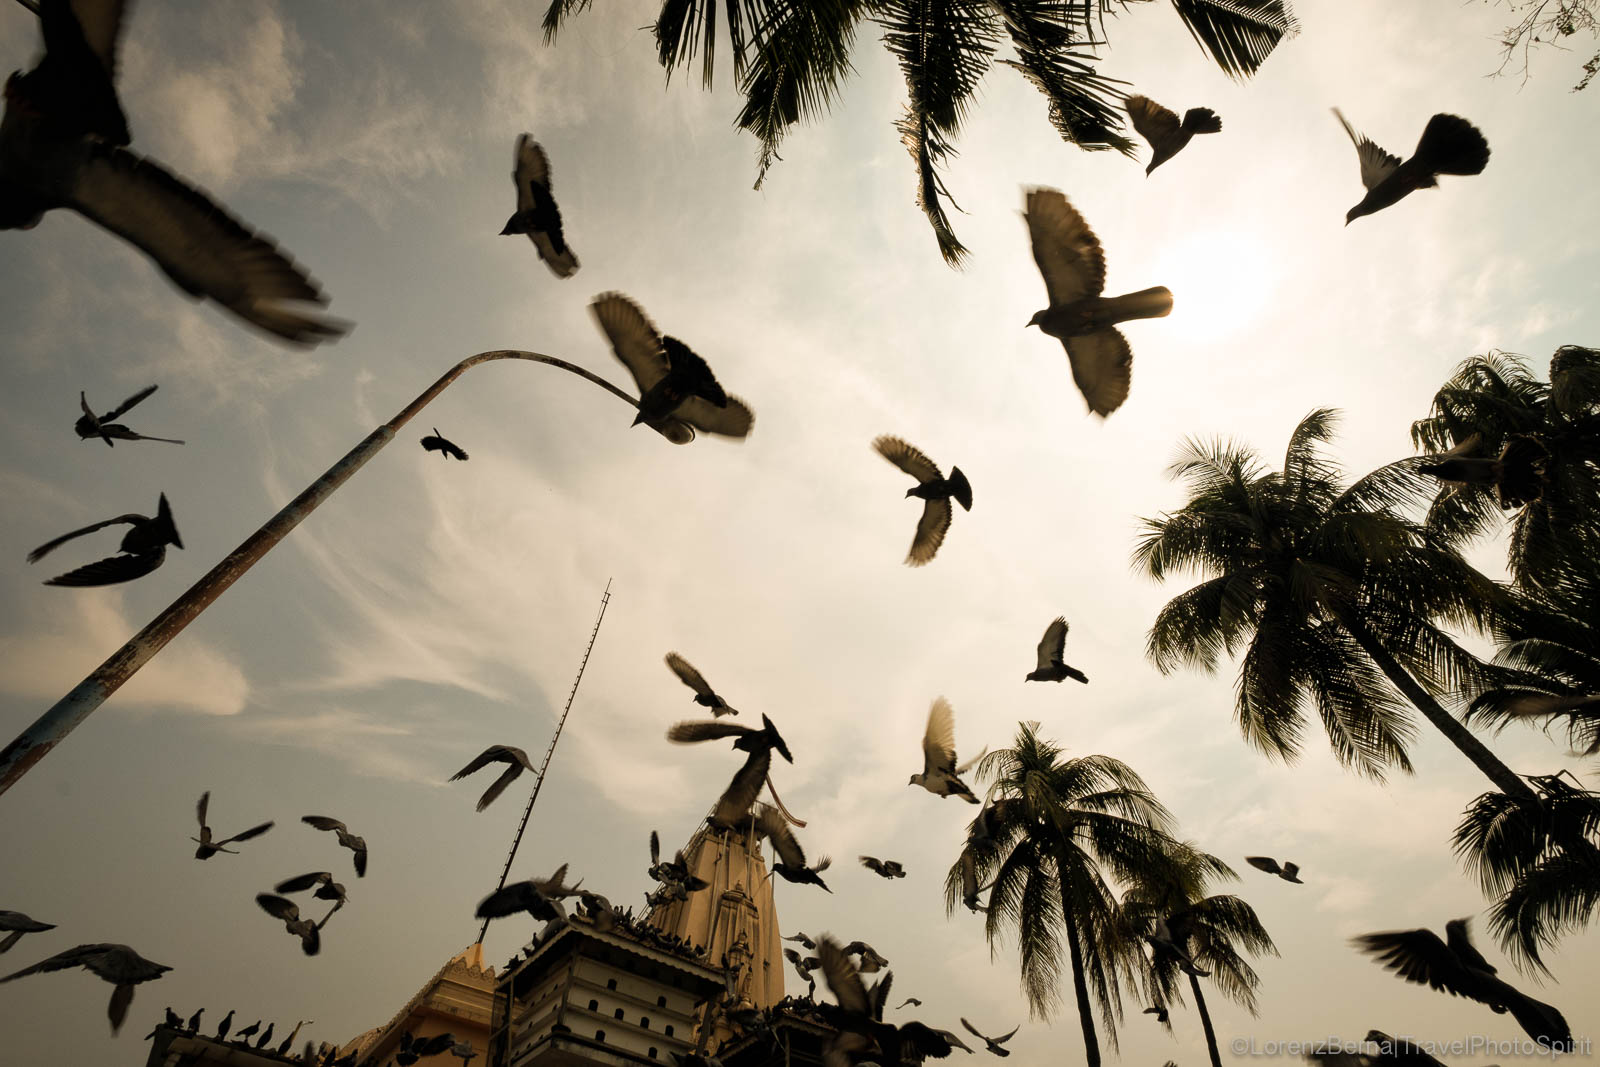 A group of pigeons are flying over the Jain temple of Kochi, kerala, India